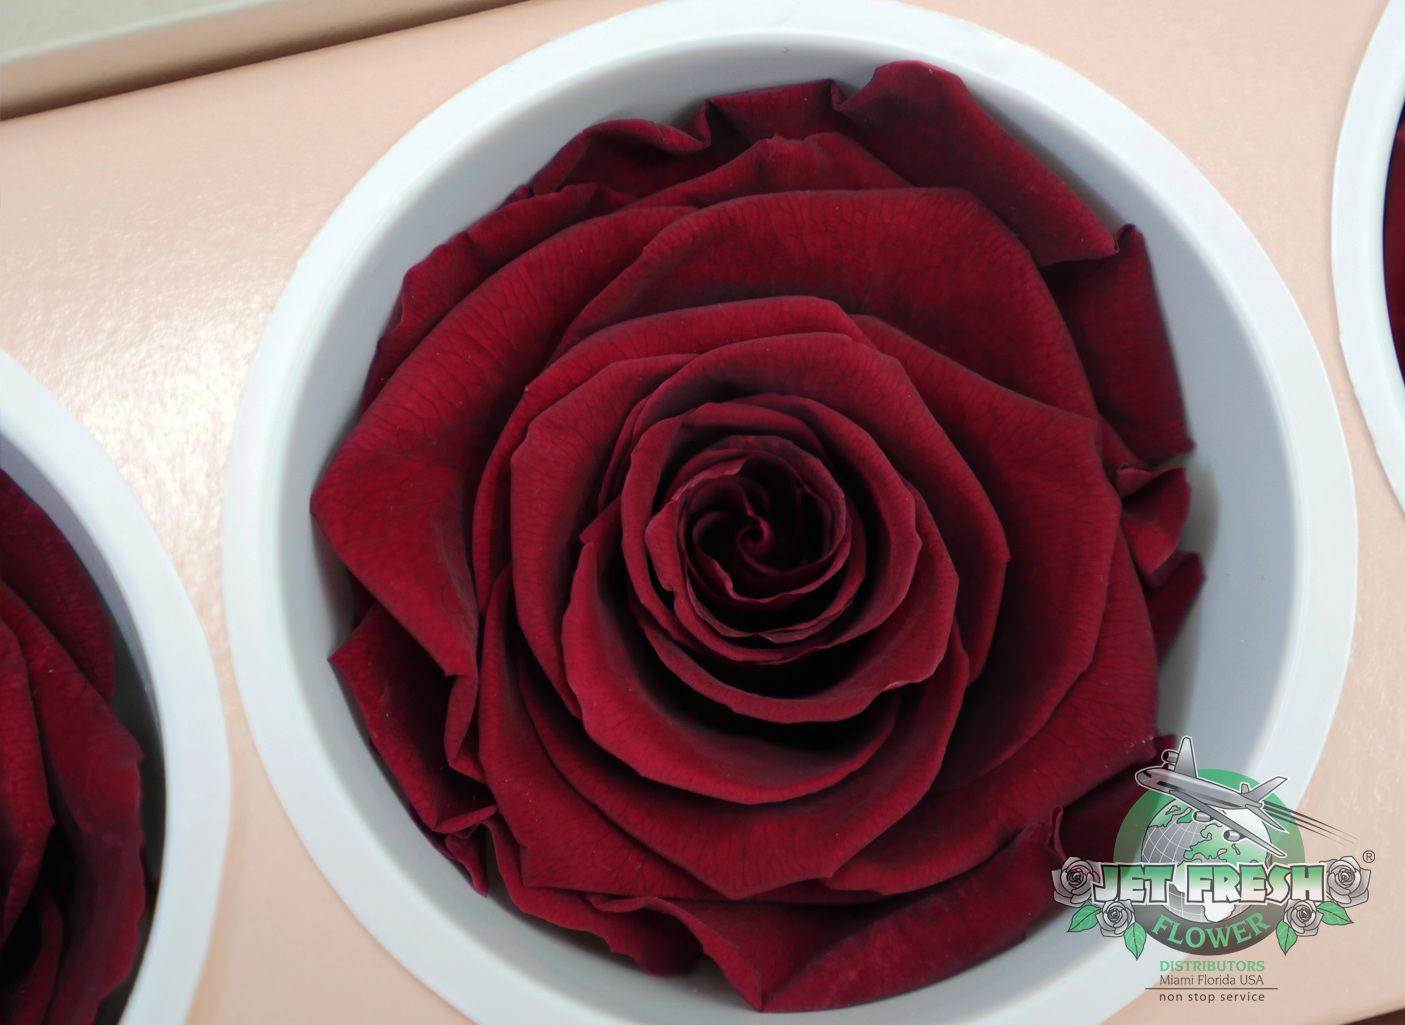 Burgundy Preserved Roses Are One Of Our Favorite New Wine Colored Varieties Available Now At